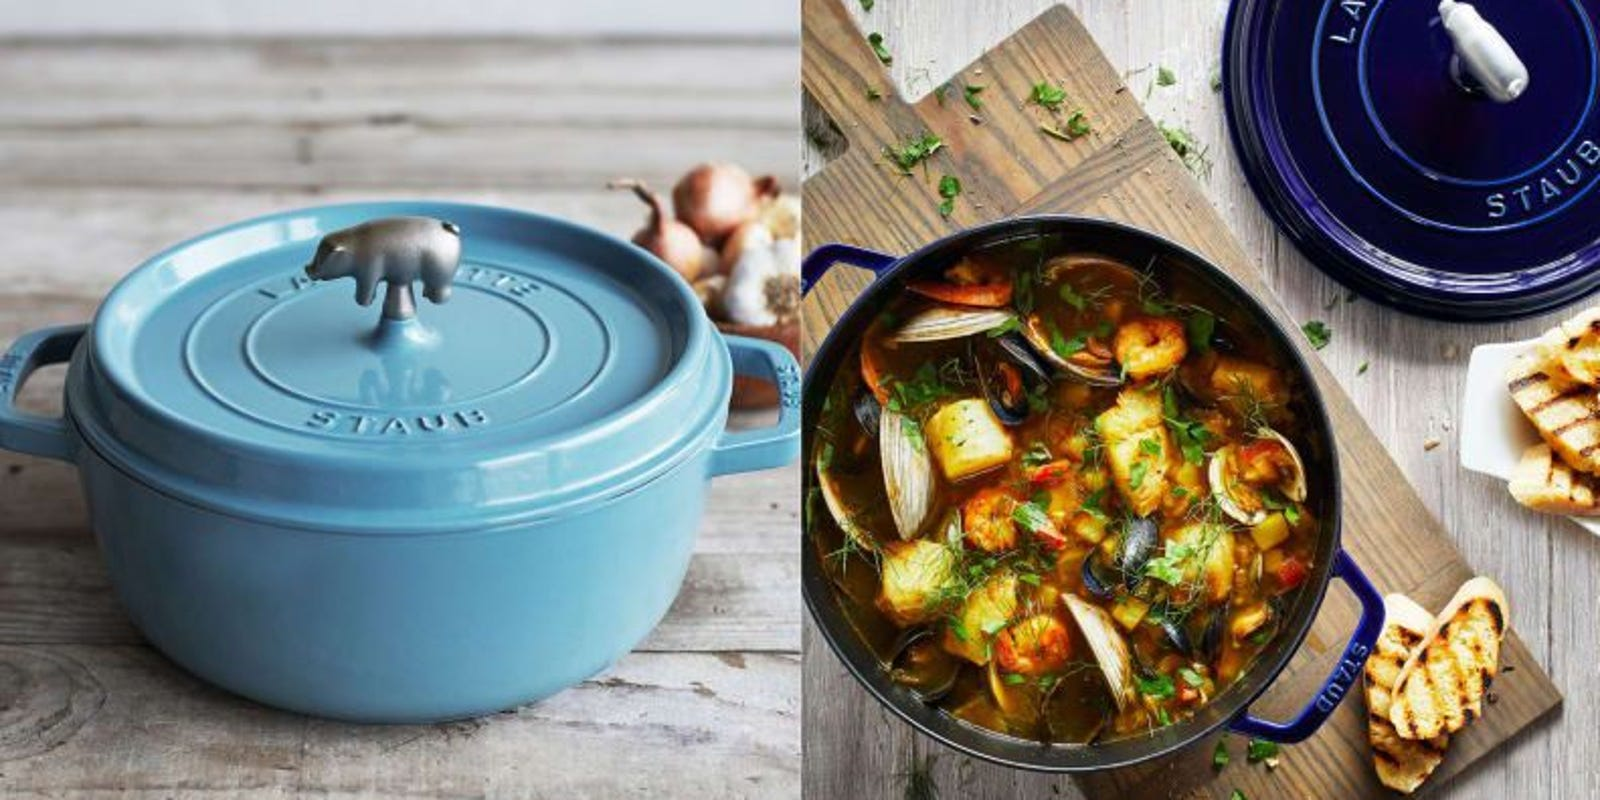 Get our favorite cocotte at a substantial discount